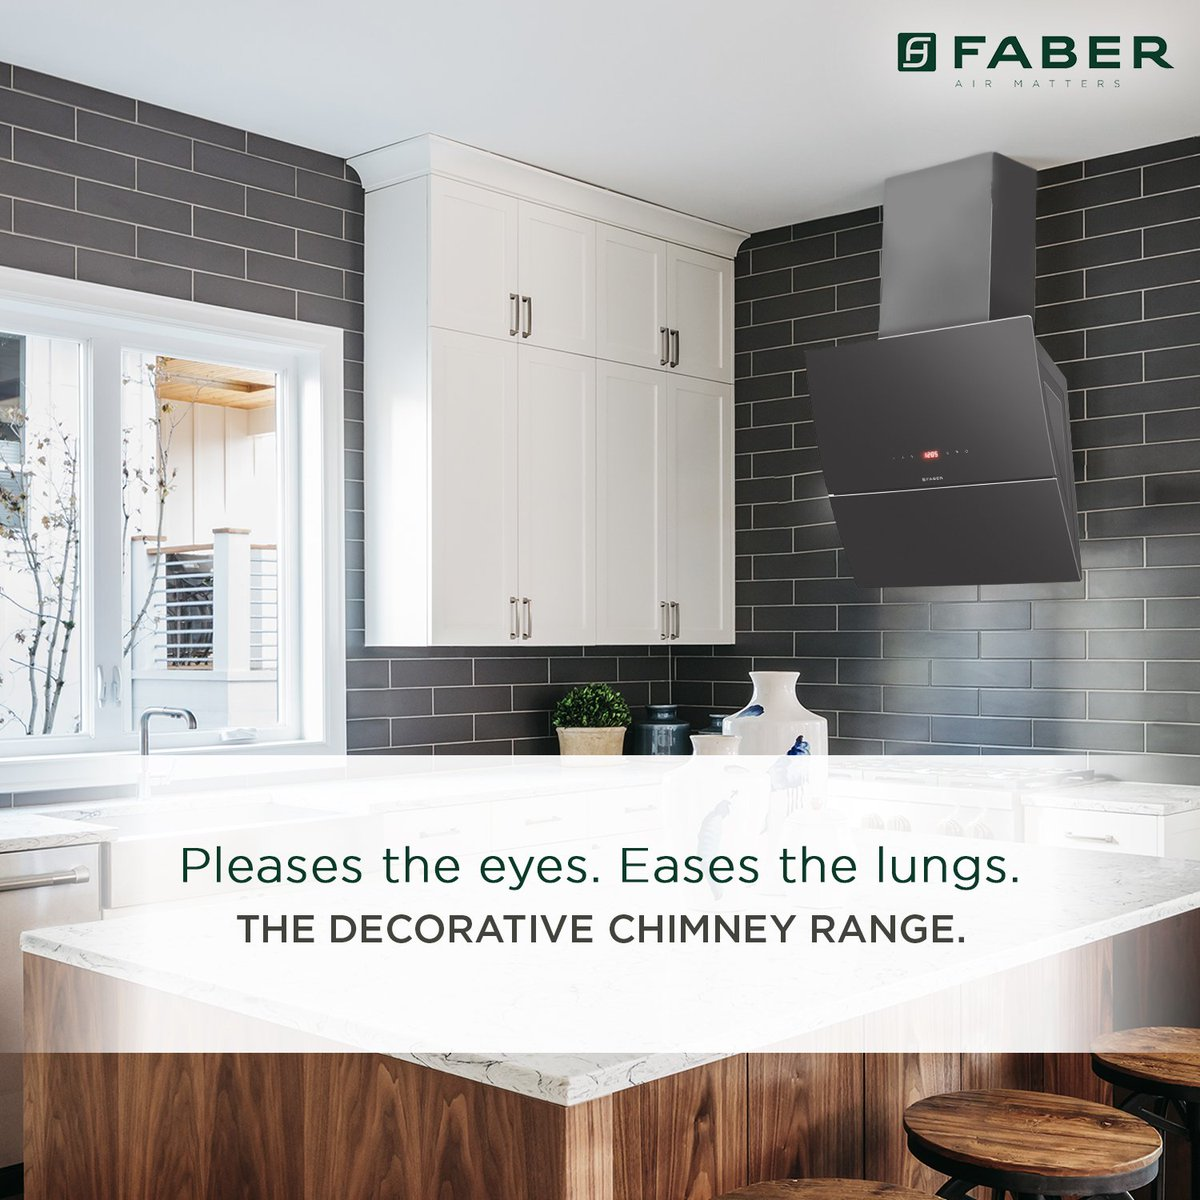 Faber Chimney Designs - Best Chimney 2018